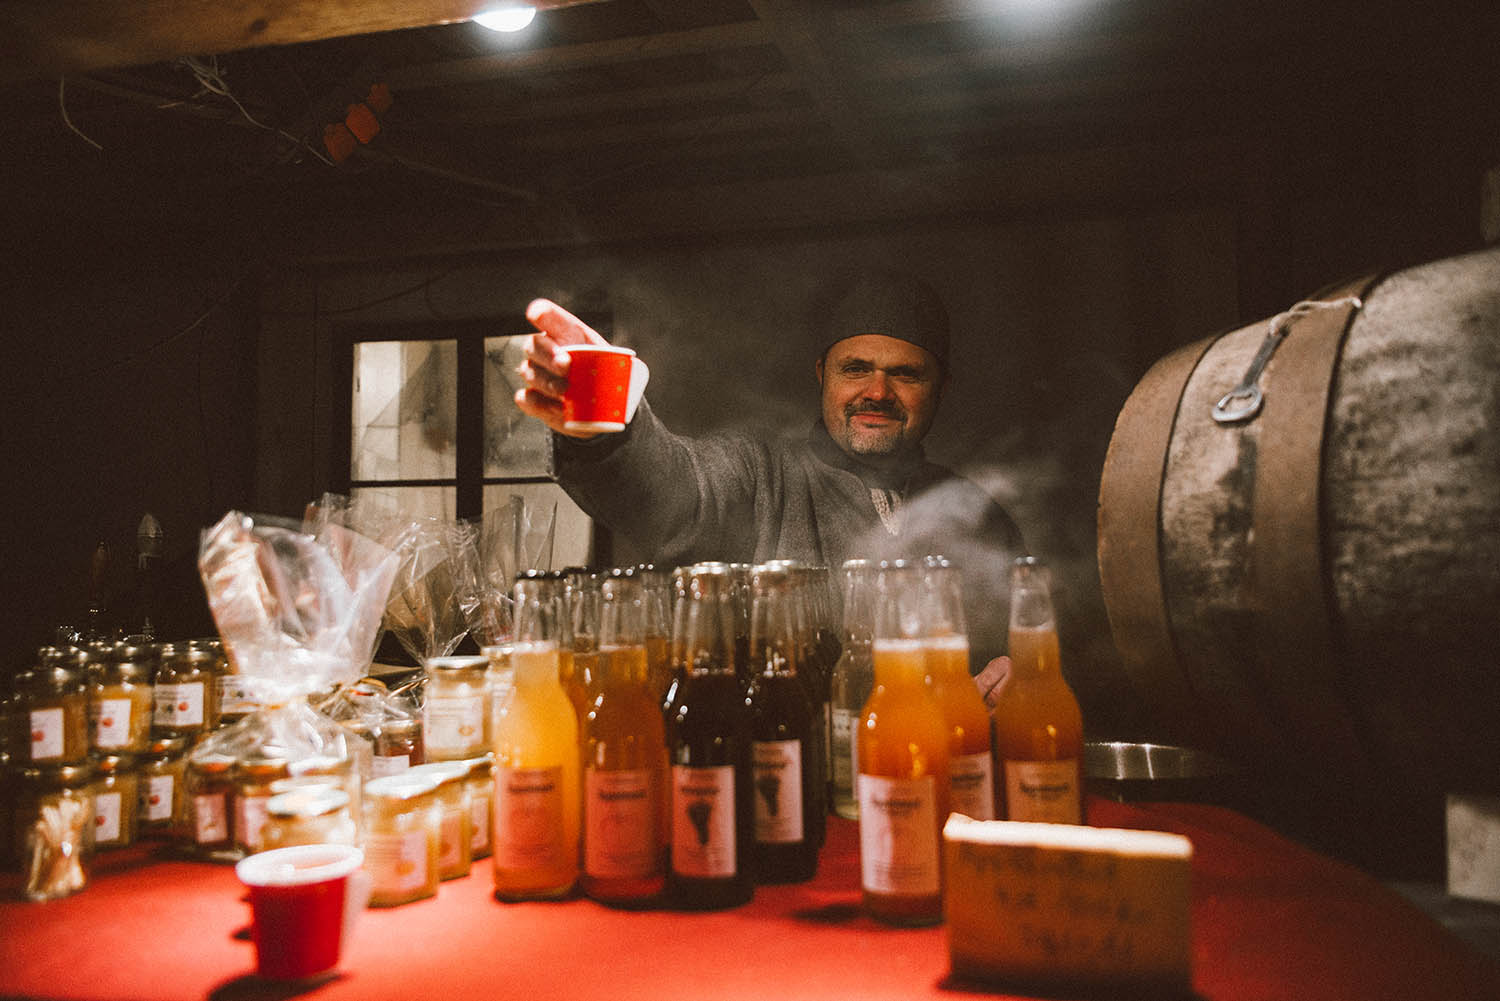 Warm spiced wine at Medieval Christmas Market in Visby